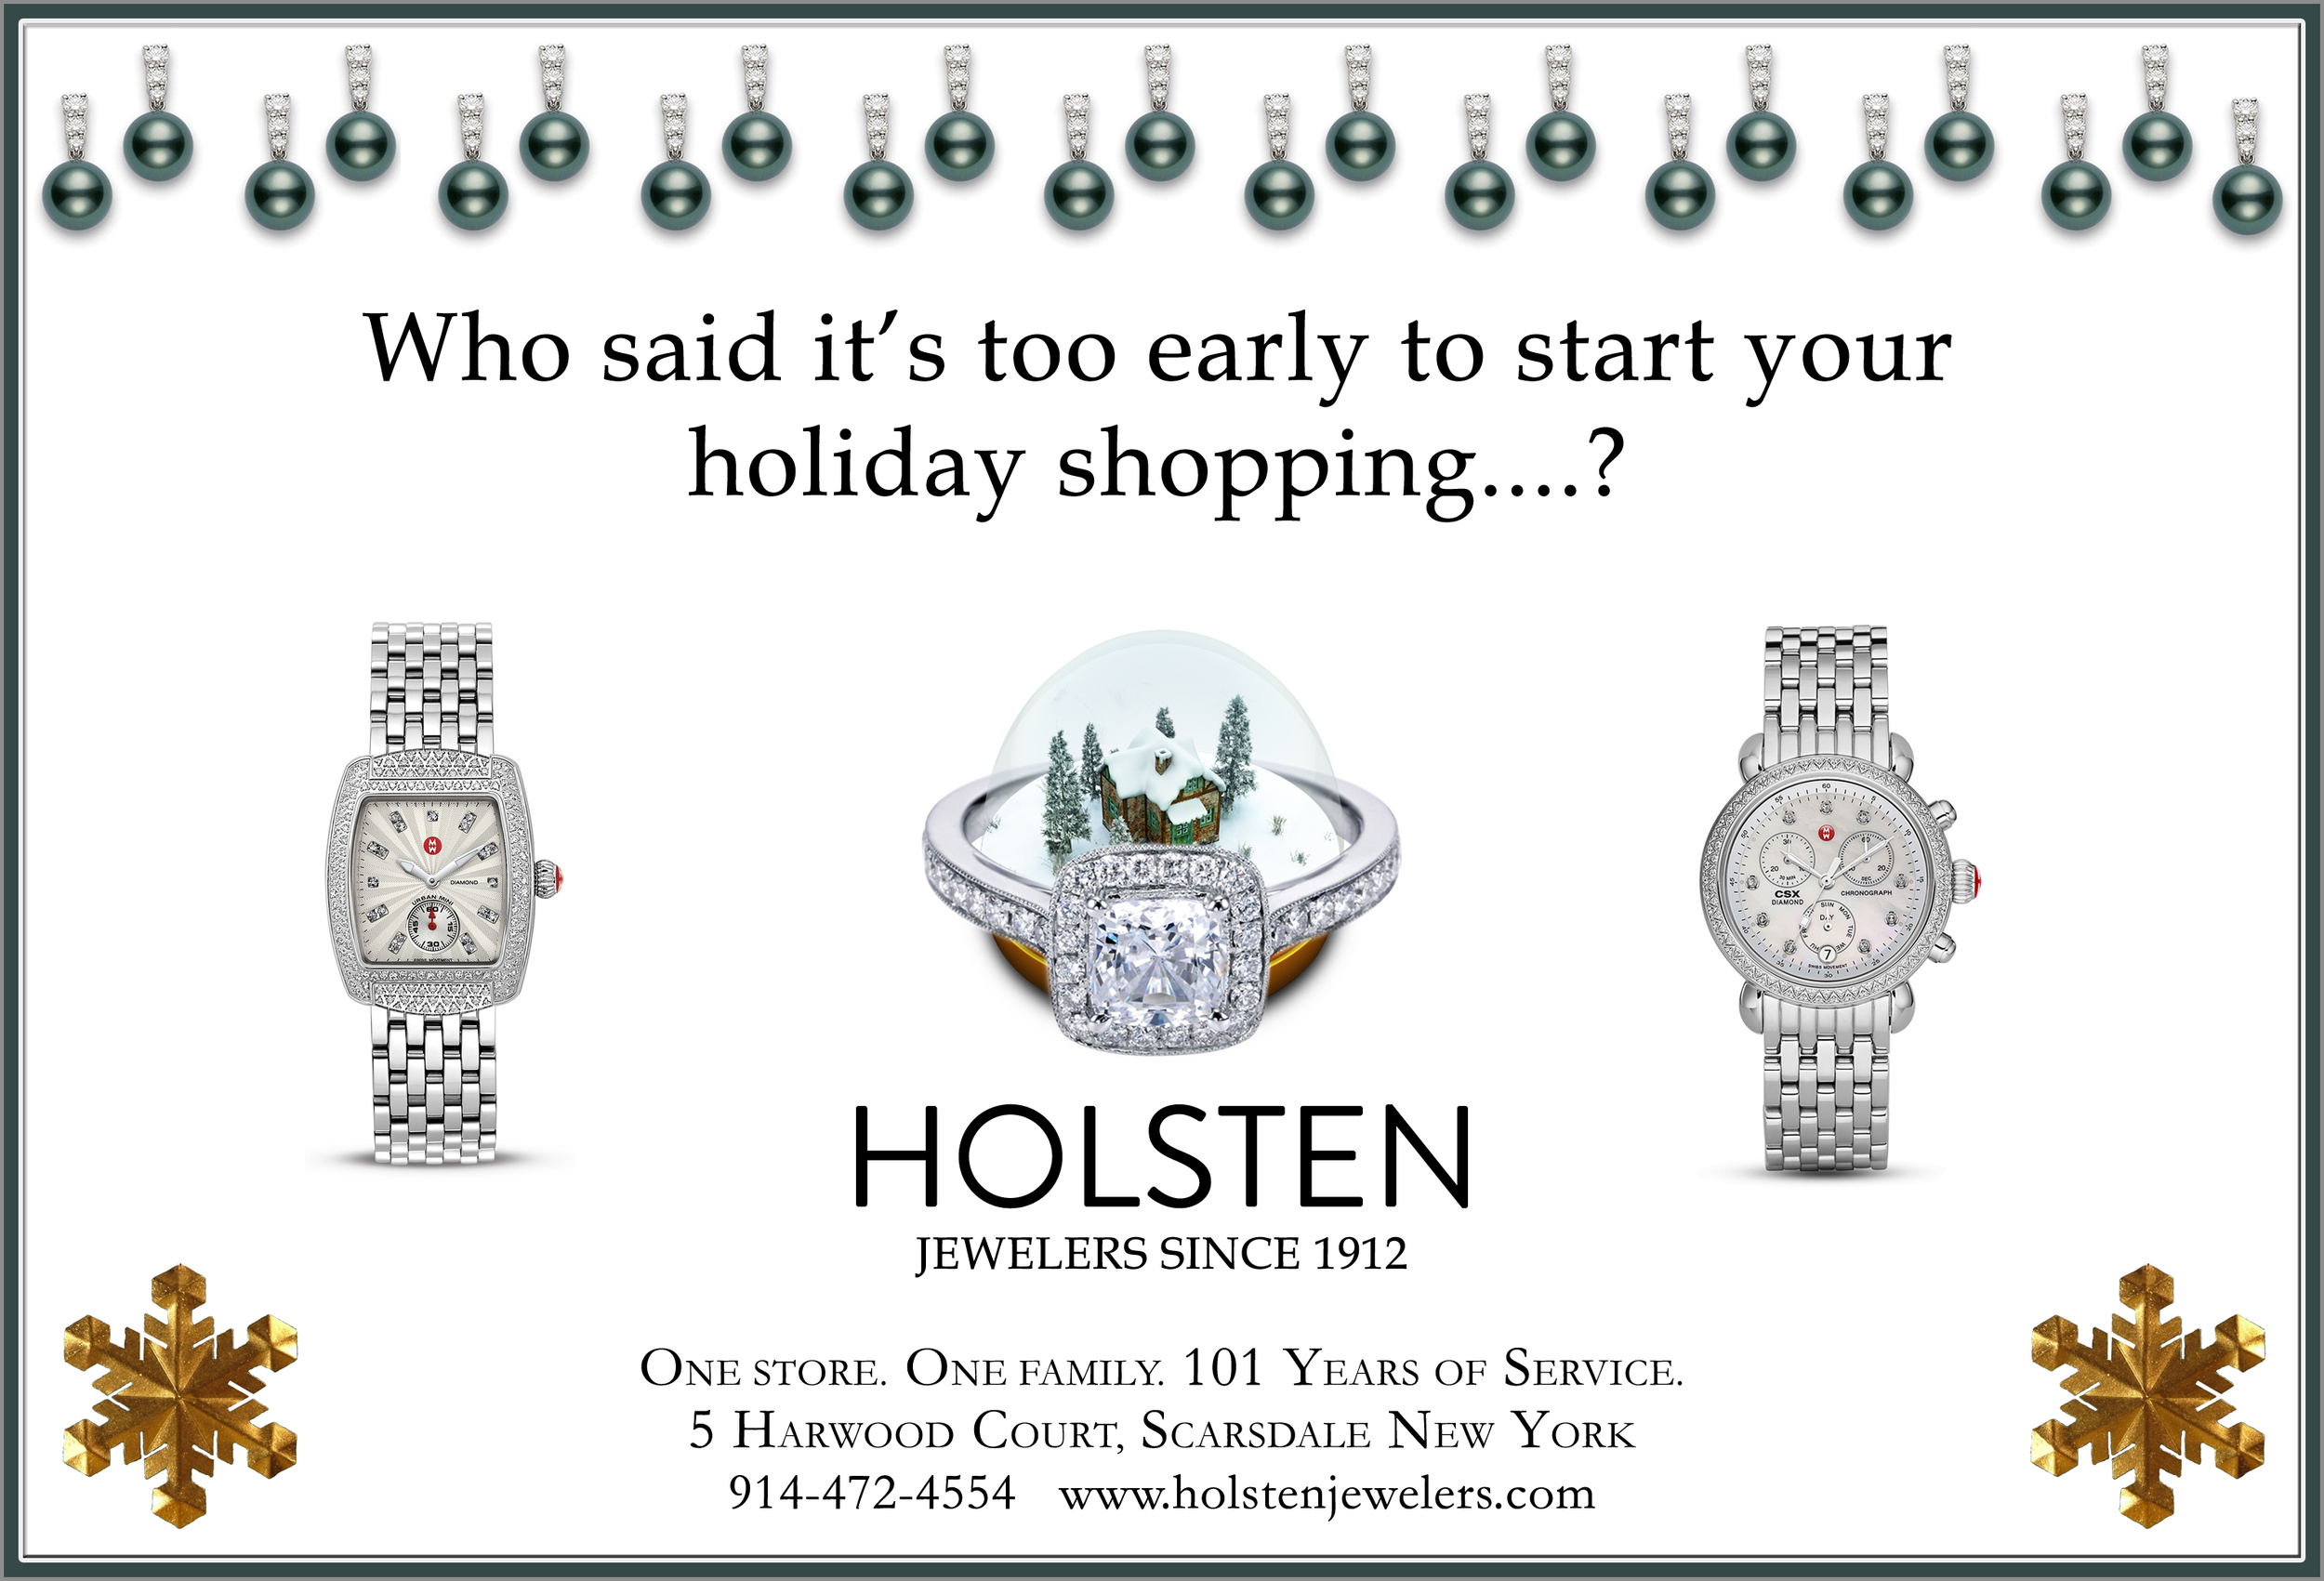 HOLIDAY AD FOR HOLSTEN JEWELERS